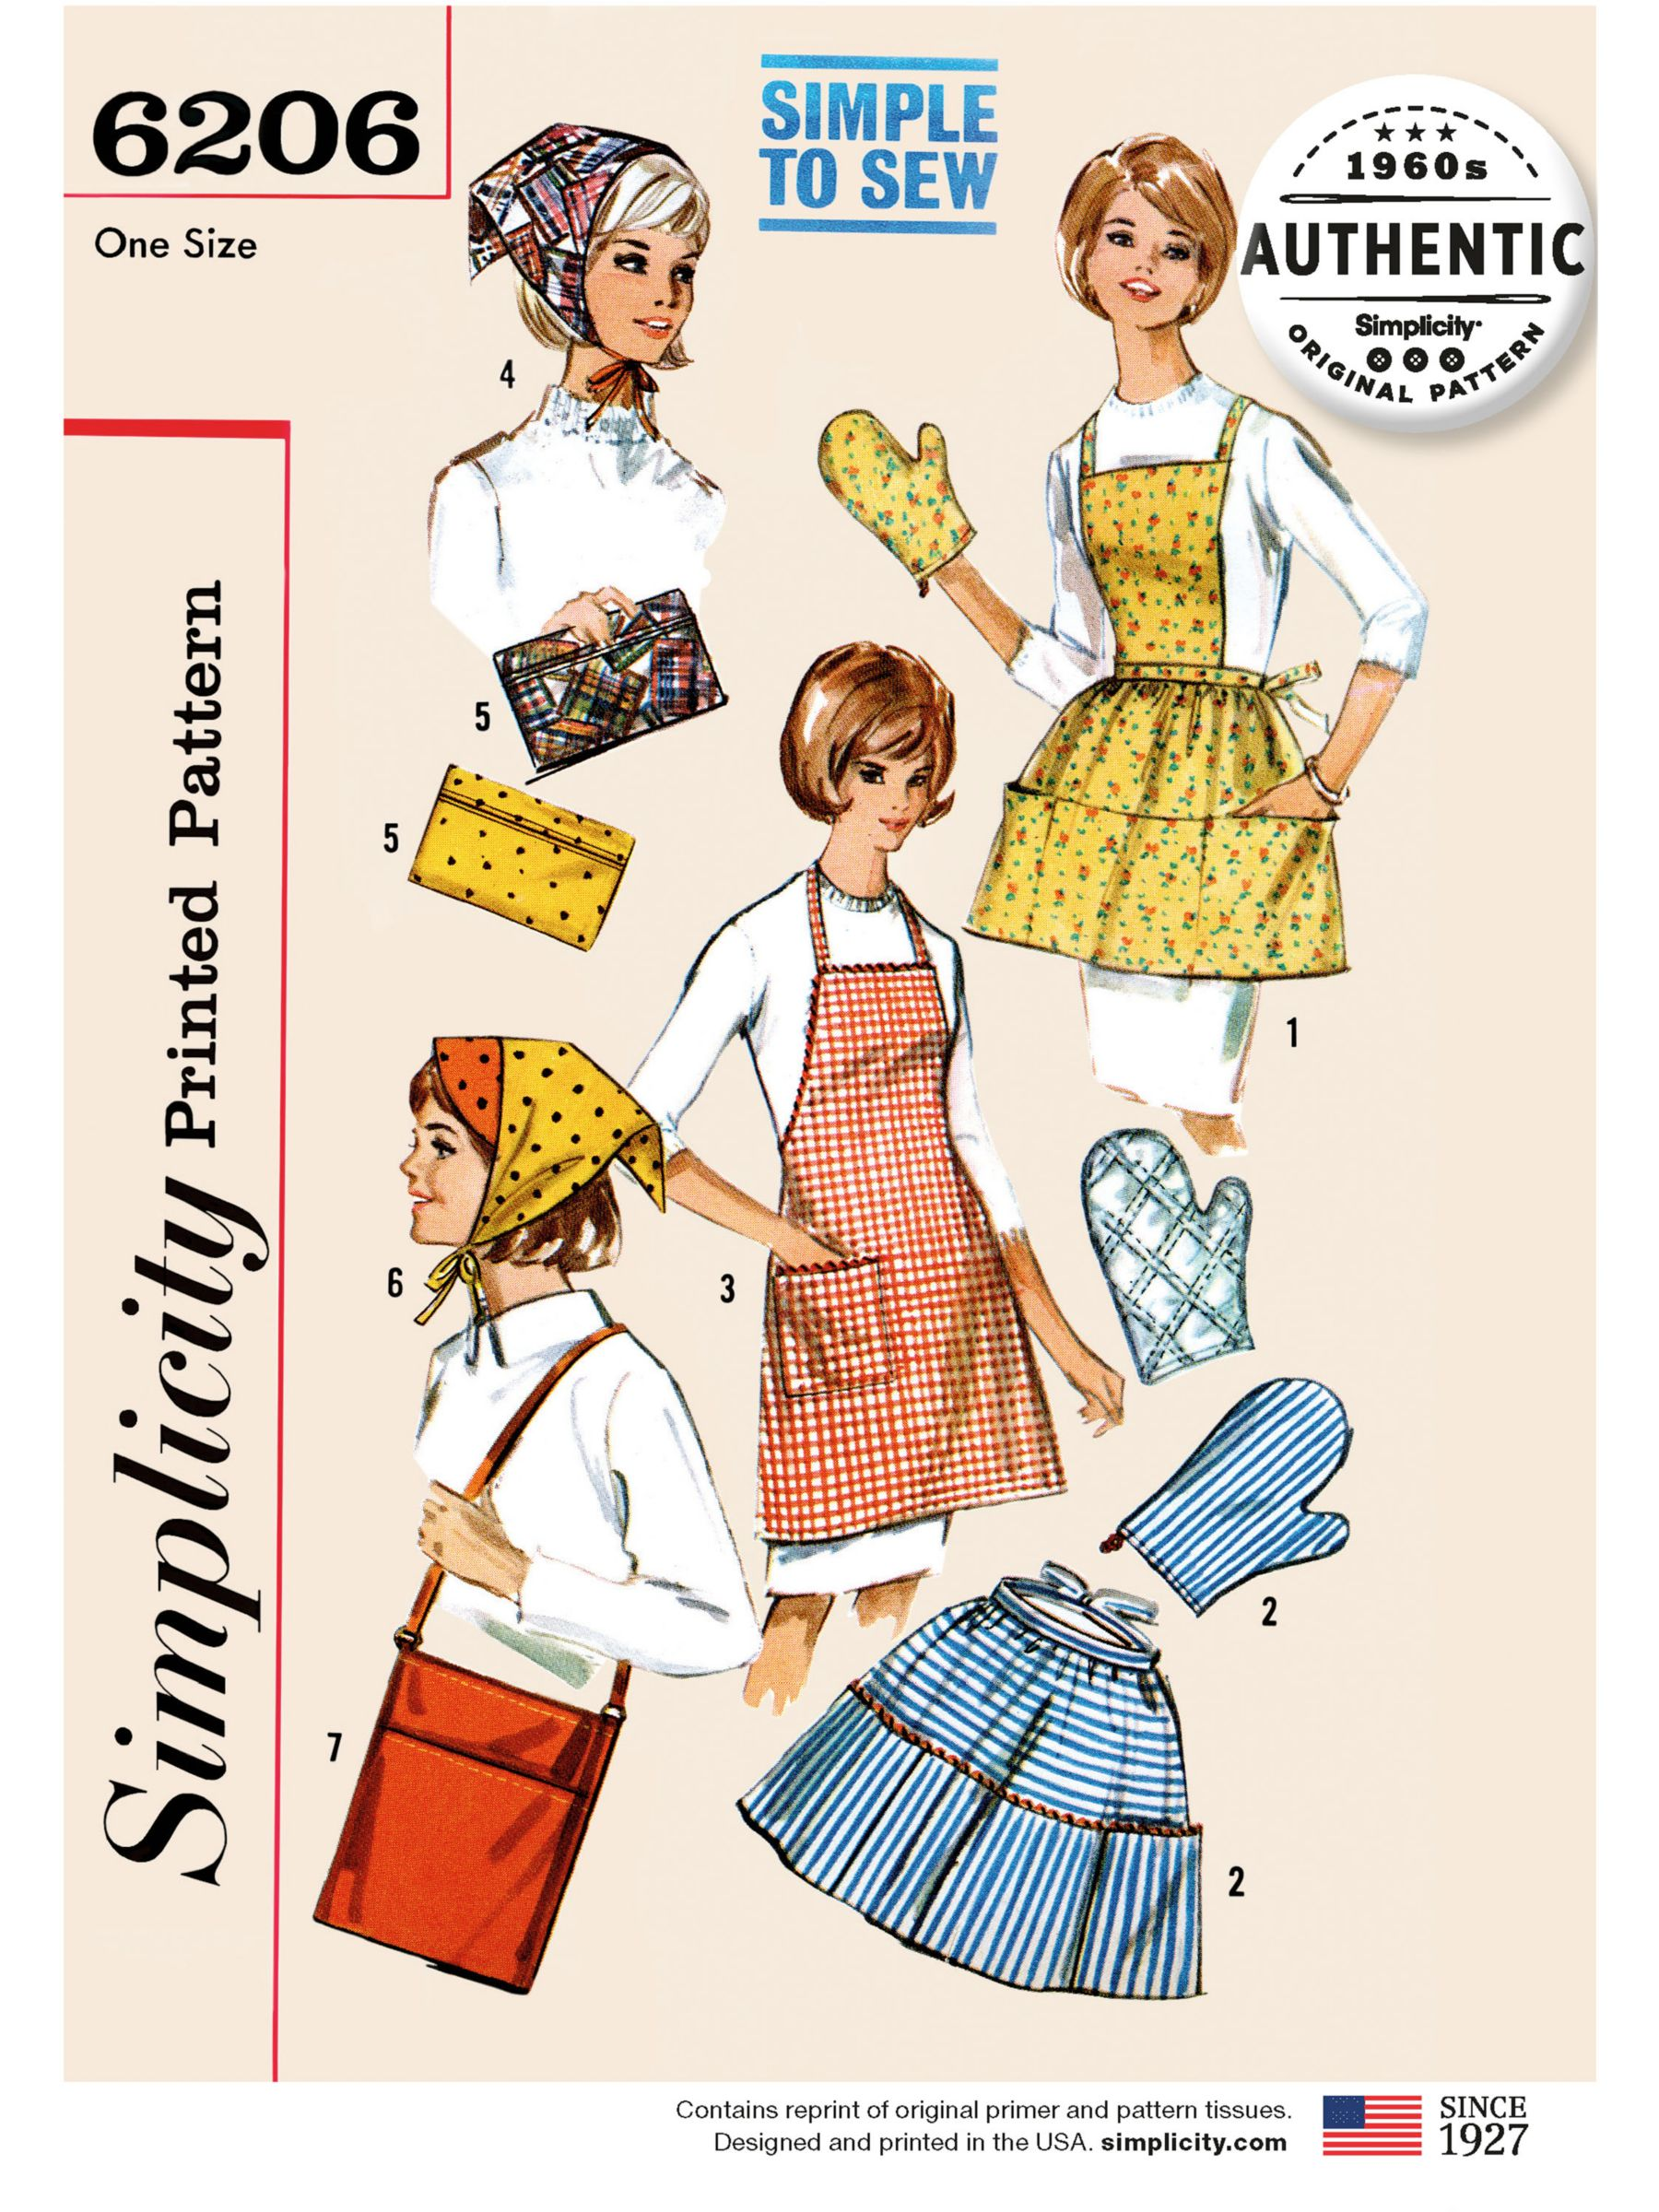 Simplicity Simplicity Women's Vintage Apron and Oven Gloves Sewing Pattern, 6206